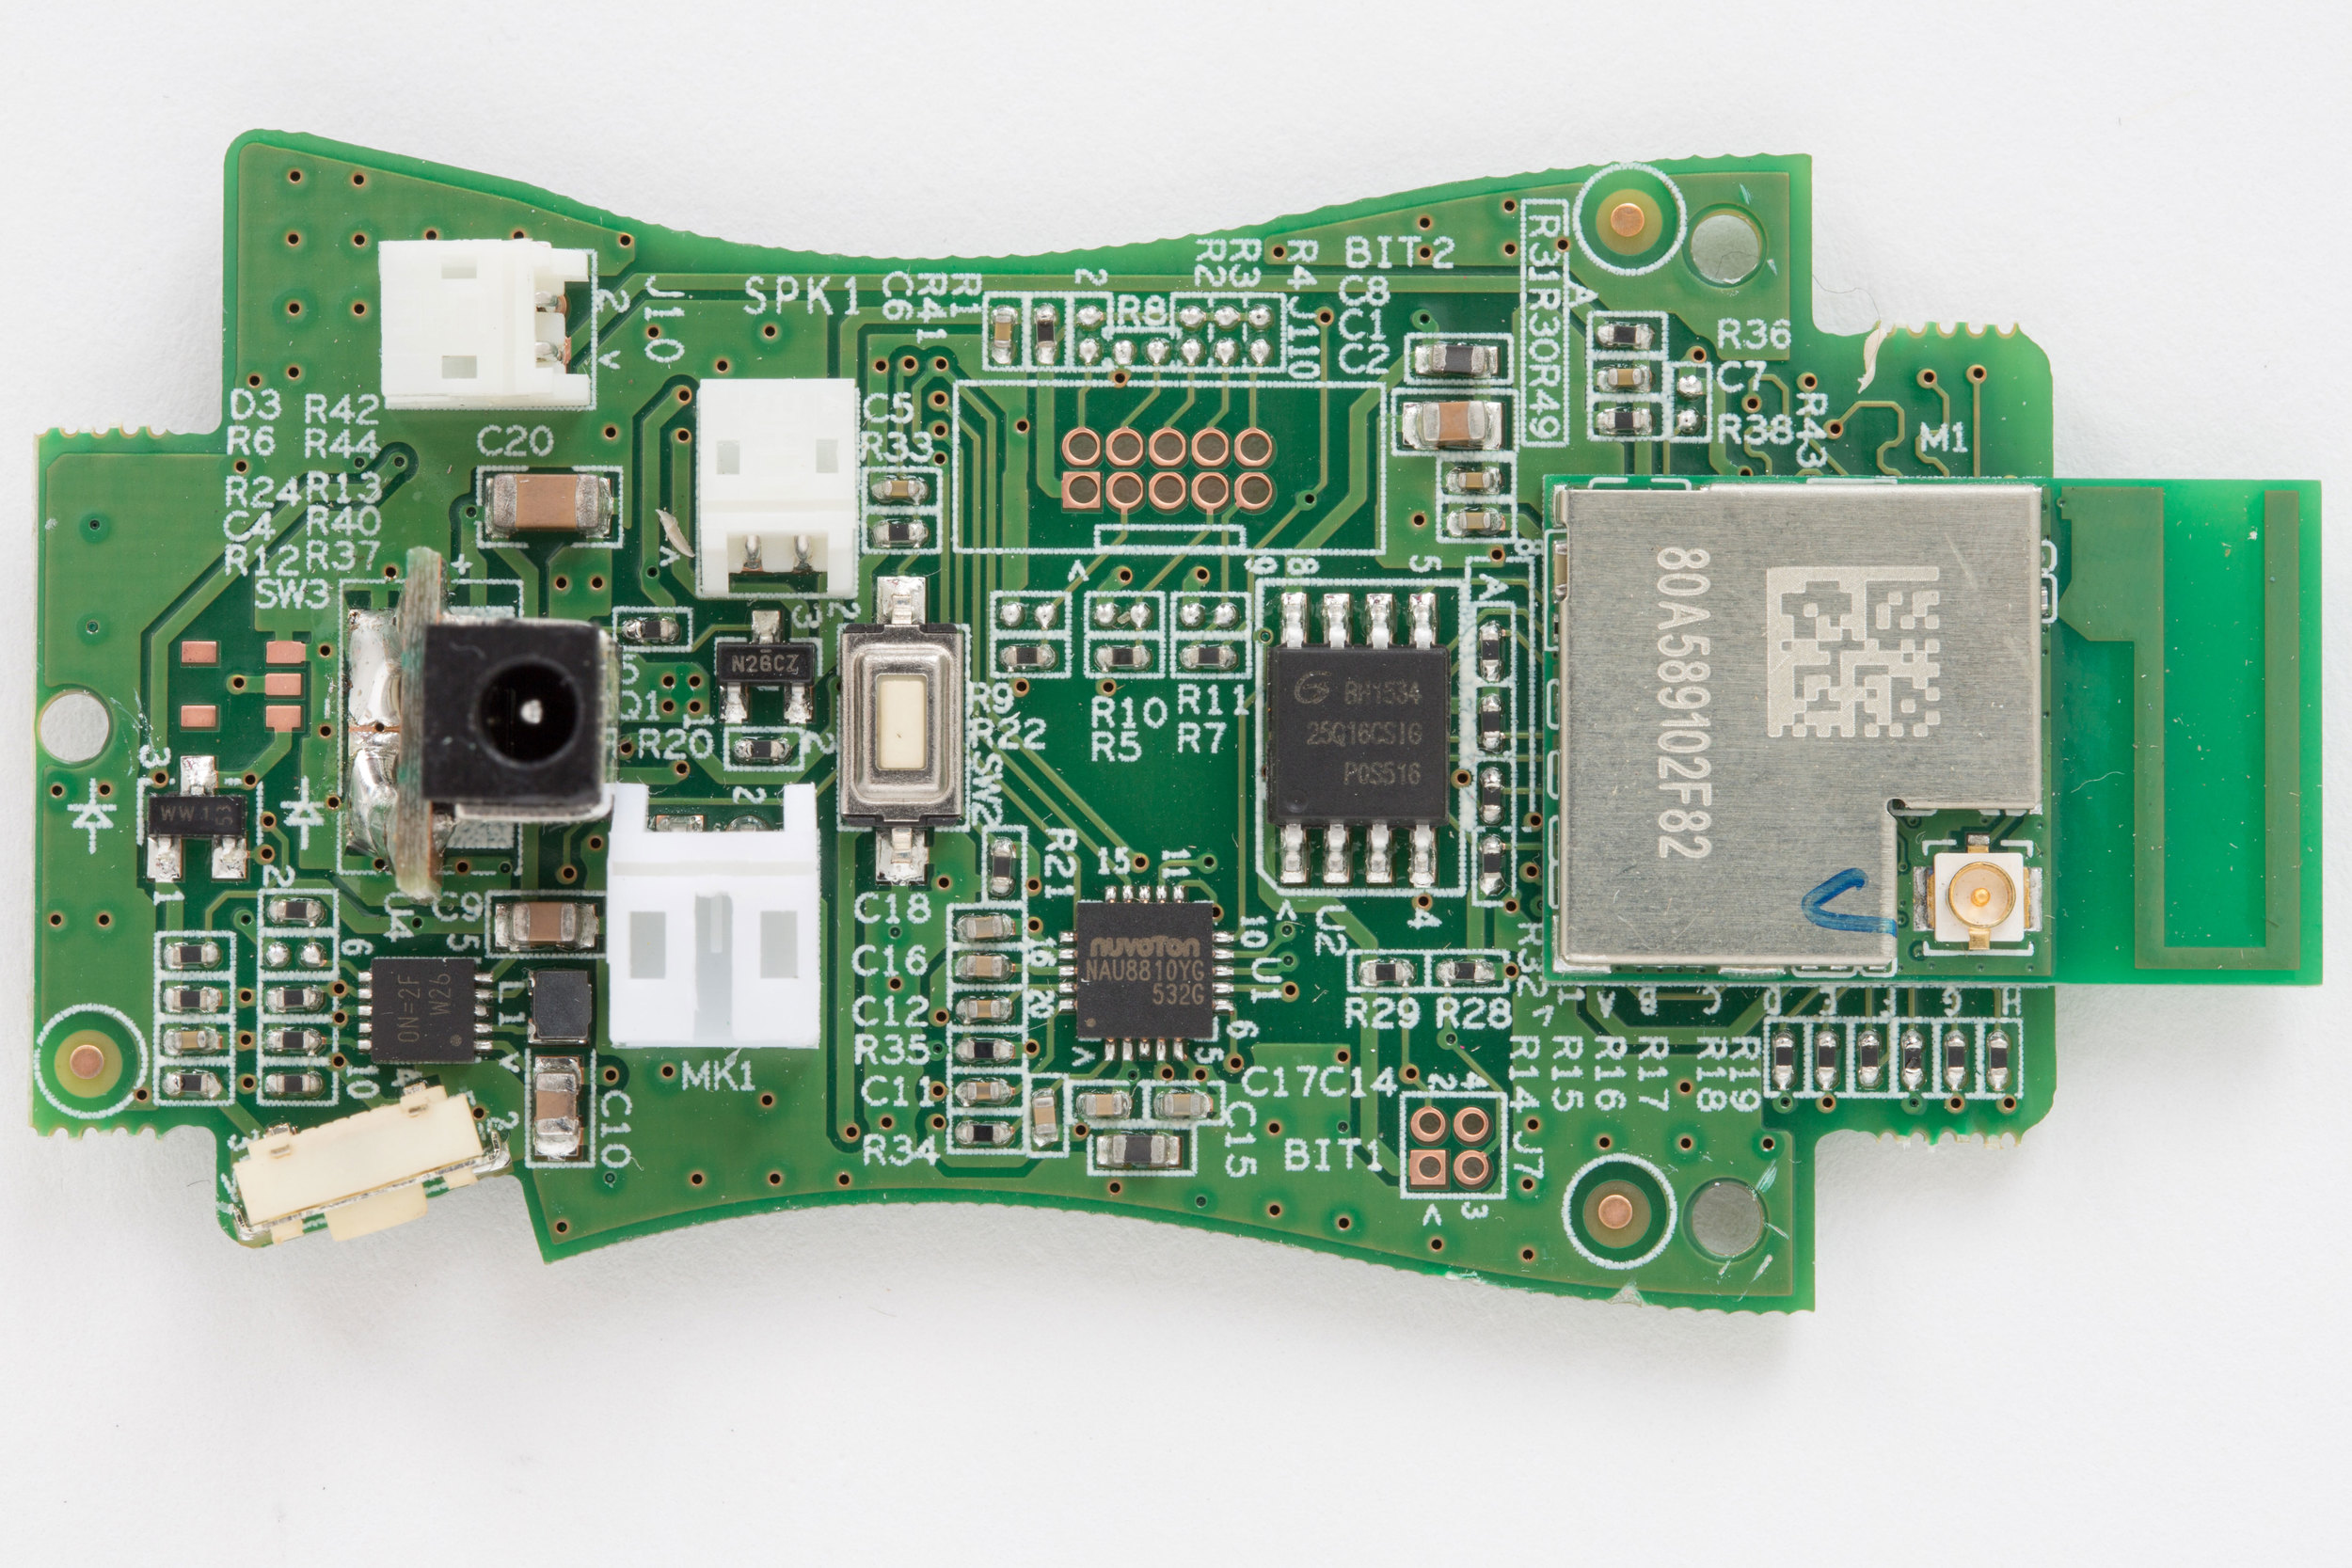 Hello Barbie main circuit board. Front side. Showing Wi-Fi module, flash memory, audio codec, and debugging headers.